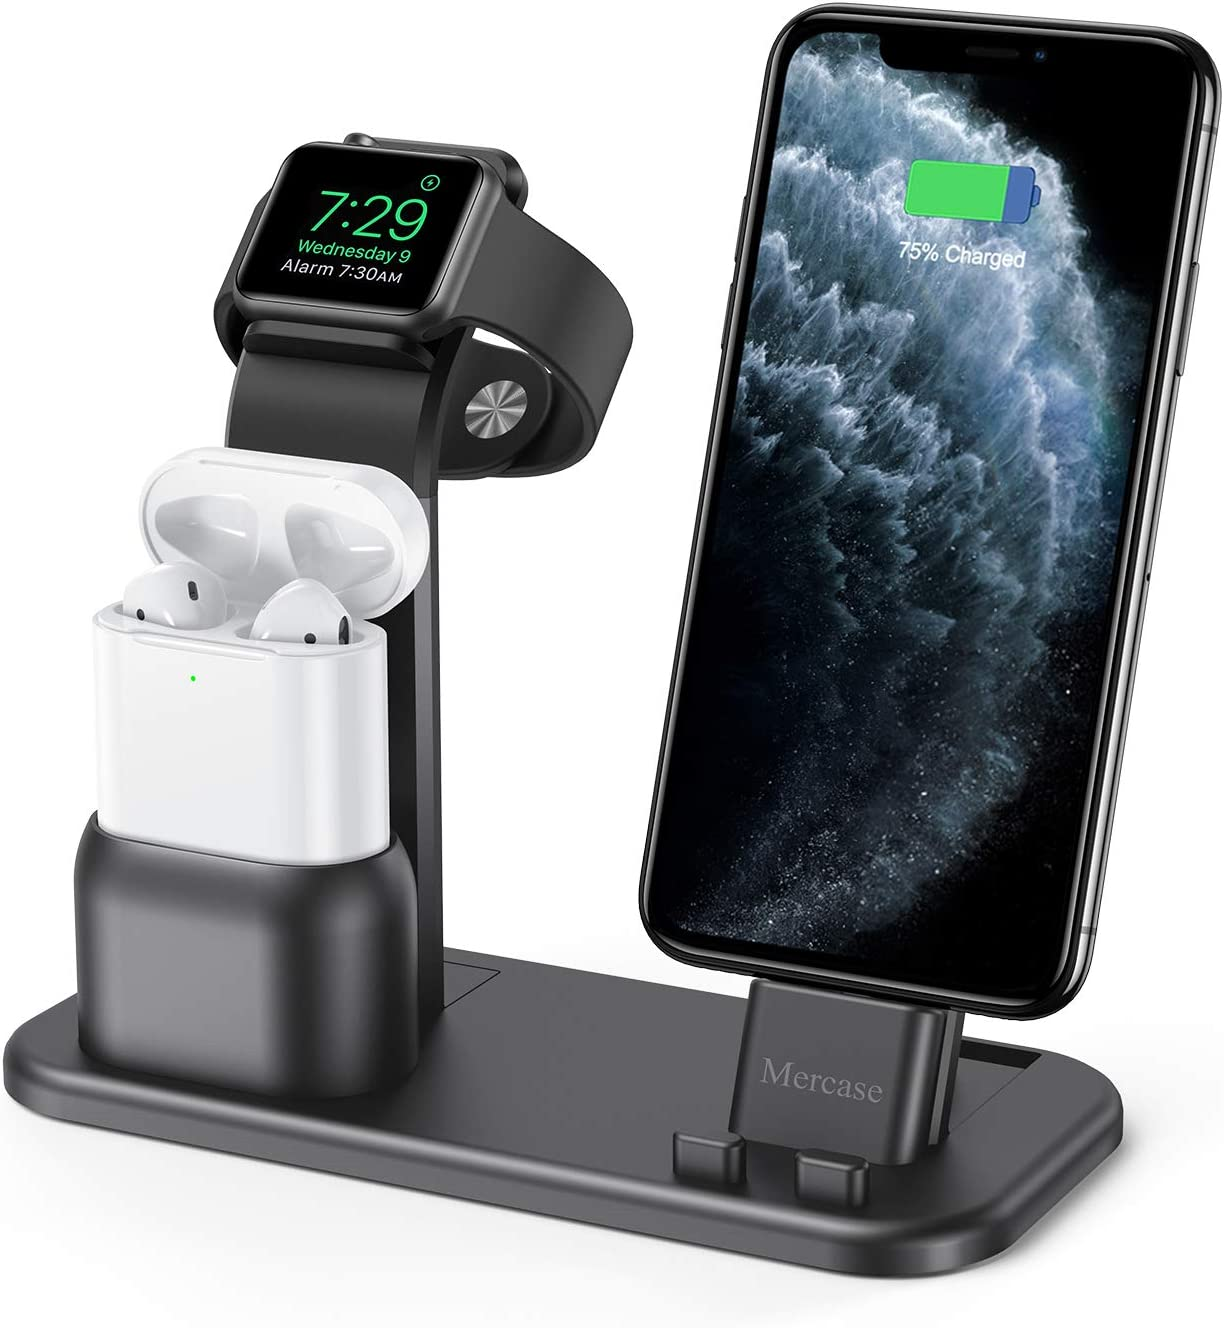 Mercase Apple Charging Station,3 in 1 Aluminum Charging Dock for iPhone Apple Watch and AirPods,Compatible with AirPods,iWatch Series SE/6/5/4/3/2/1,iPhone 11/ Xs/X Max/XR/X(Space Grey+ USB Cable)